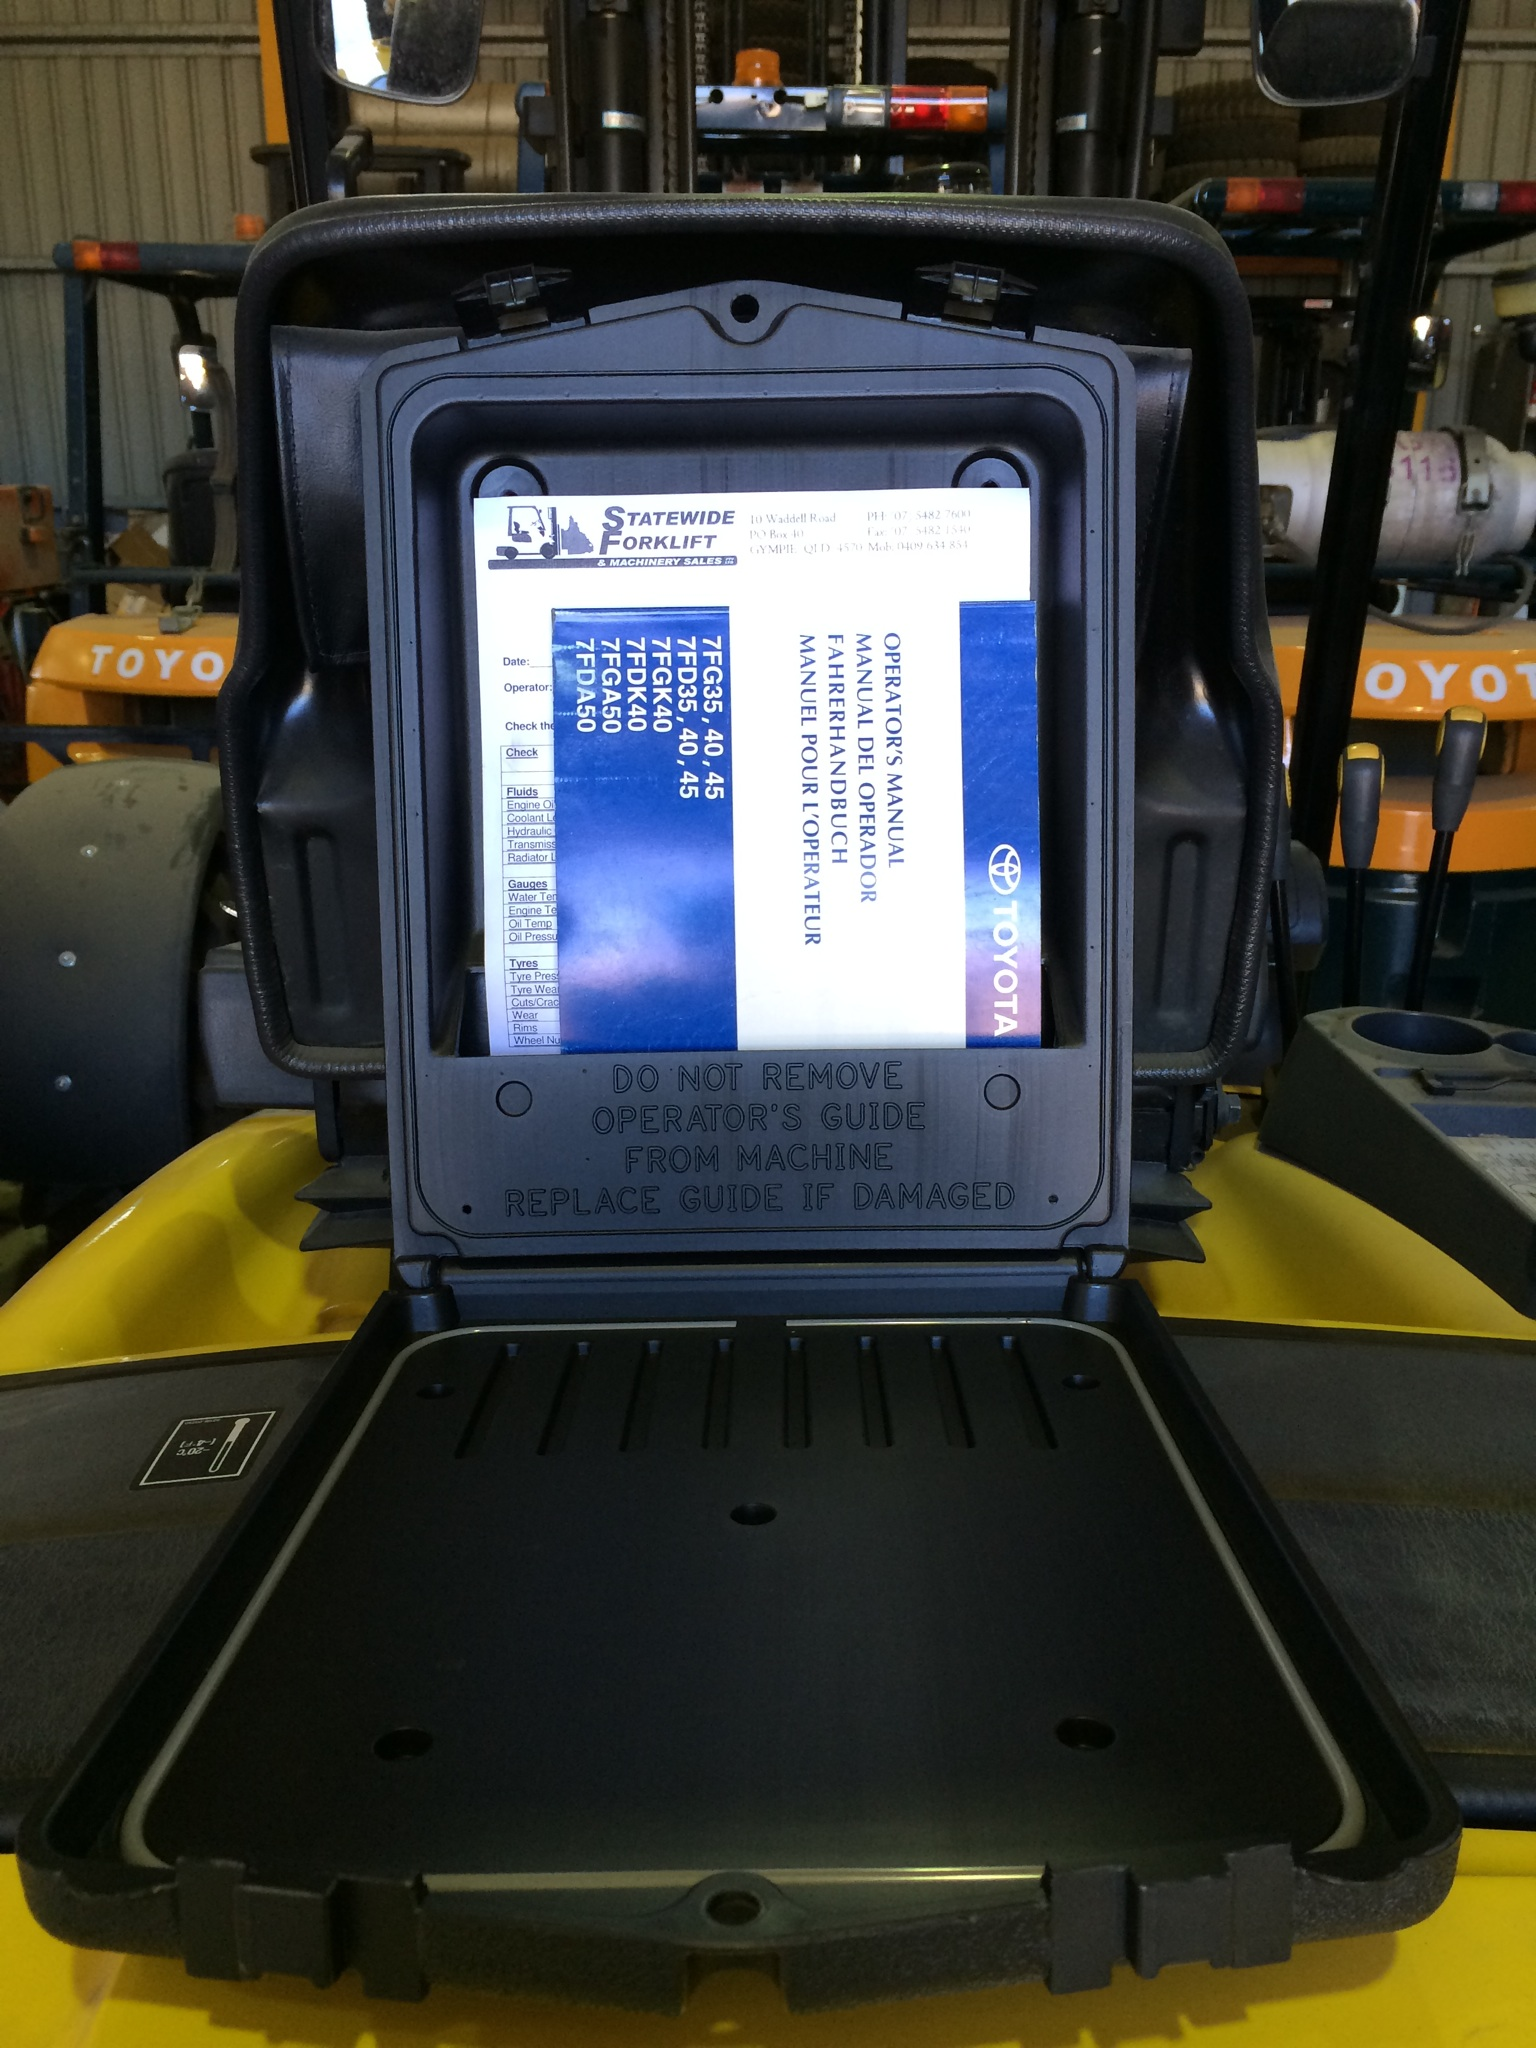 Statewide Forklift work manual cover